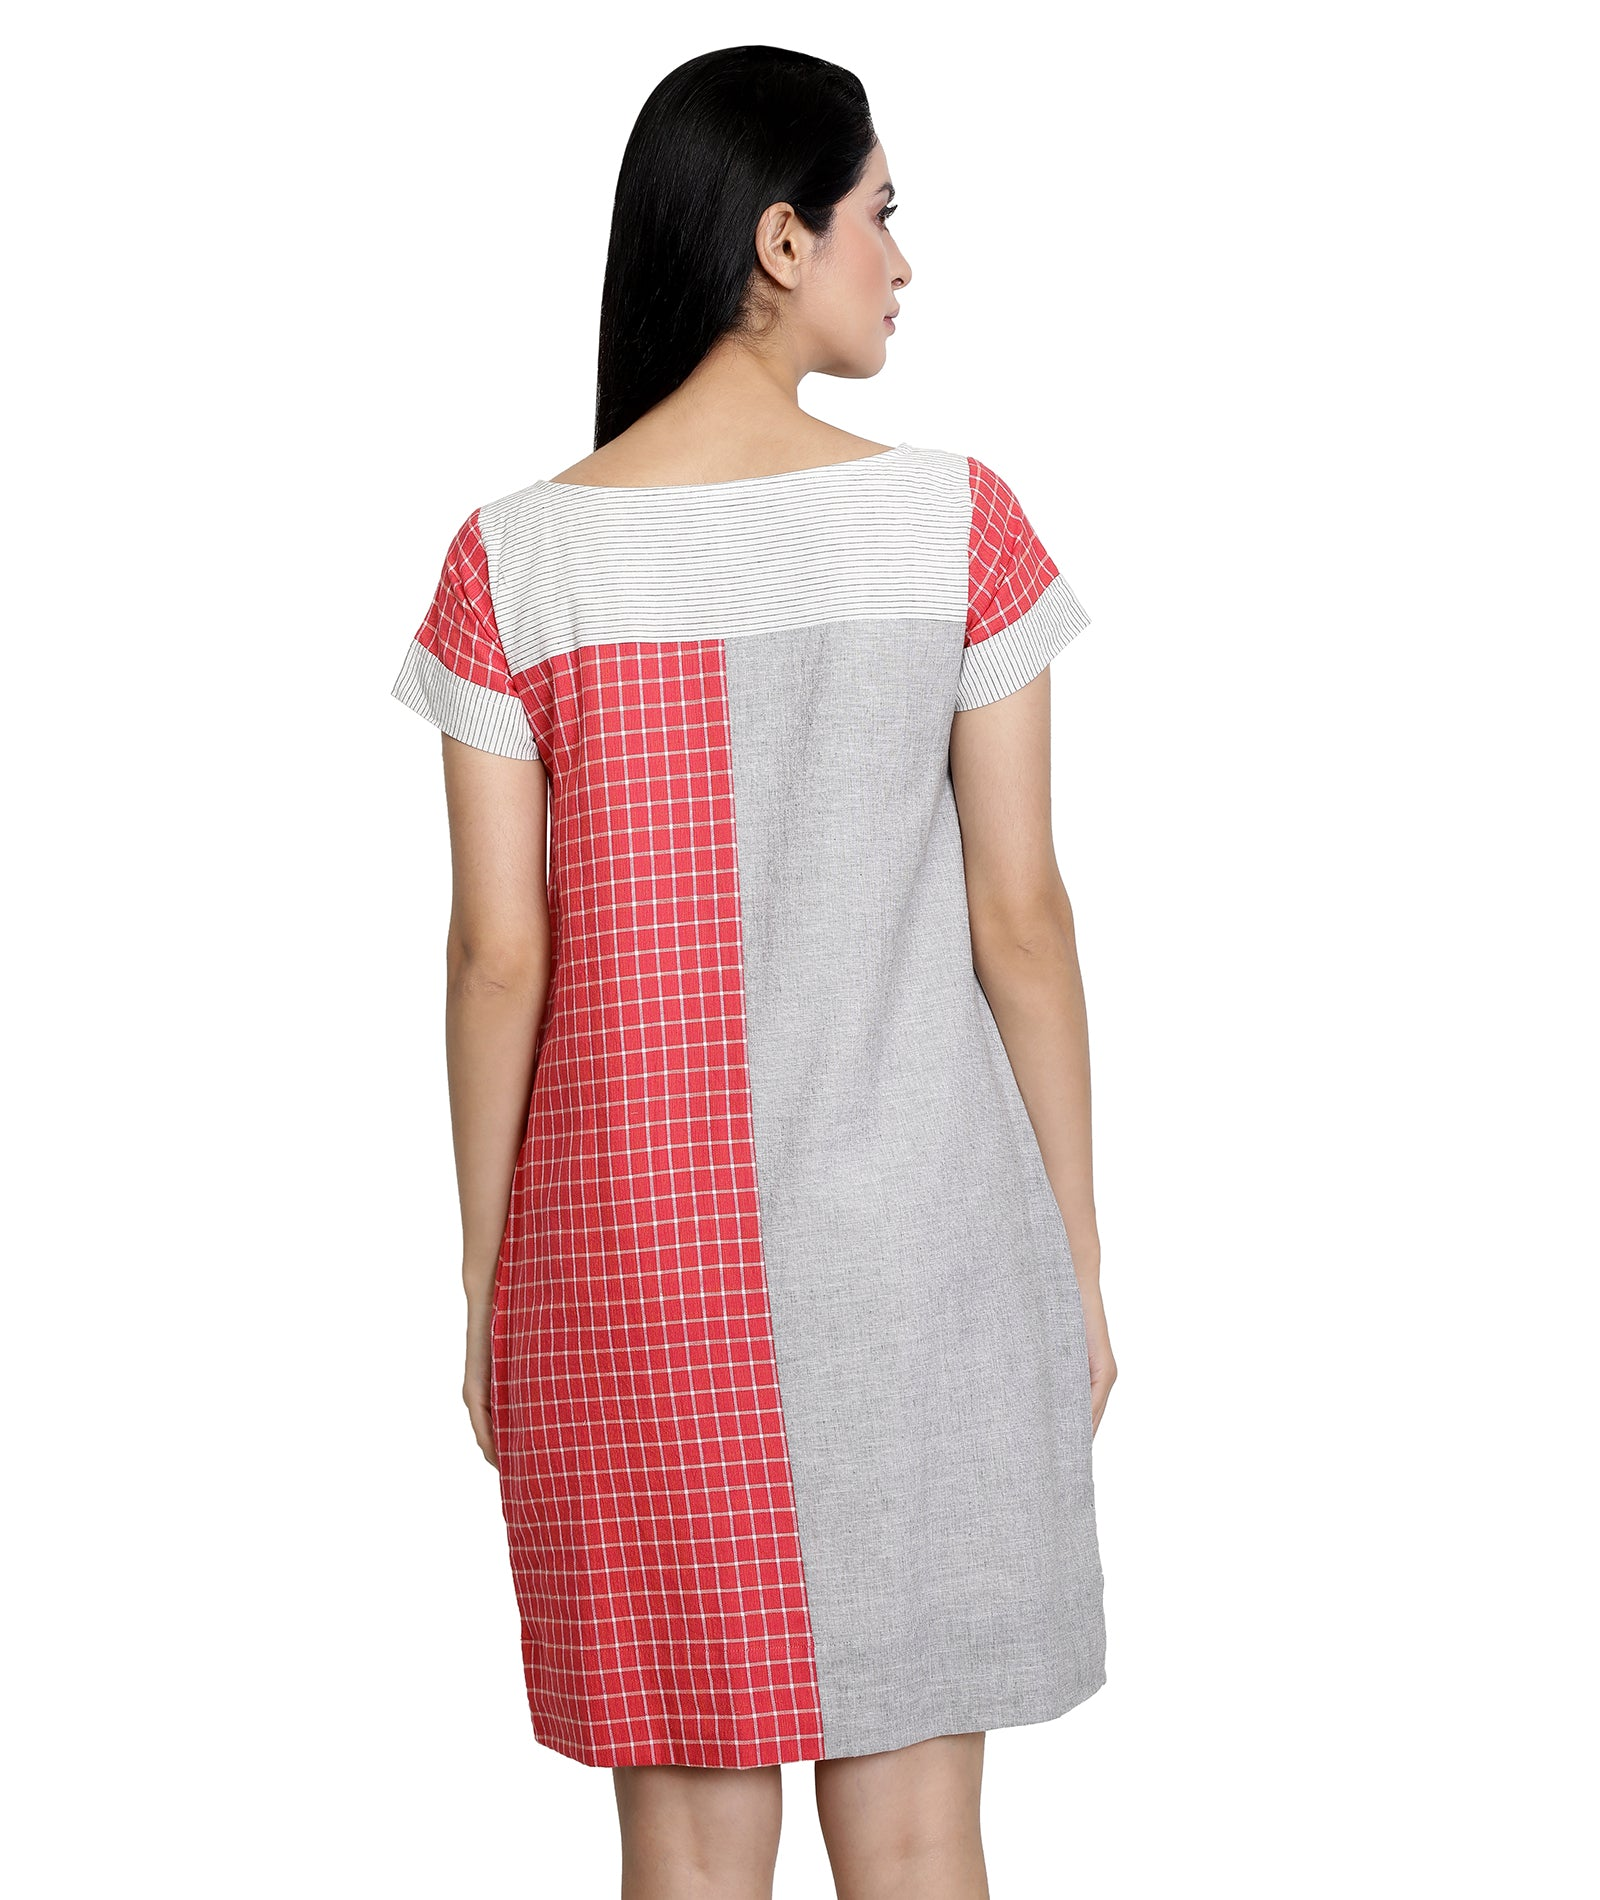 Summer Dress for Women